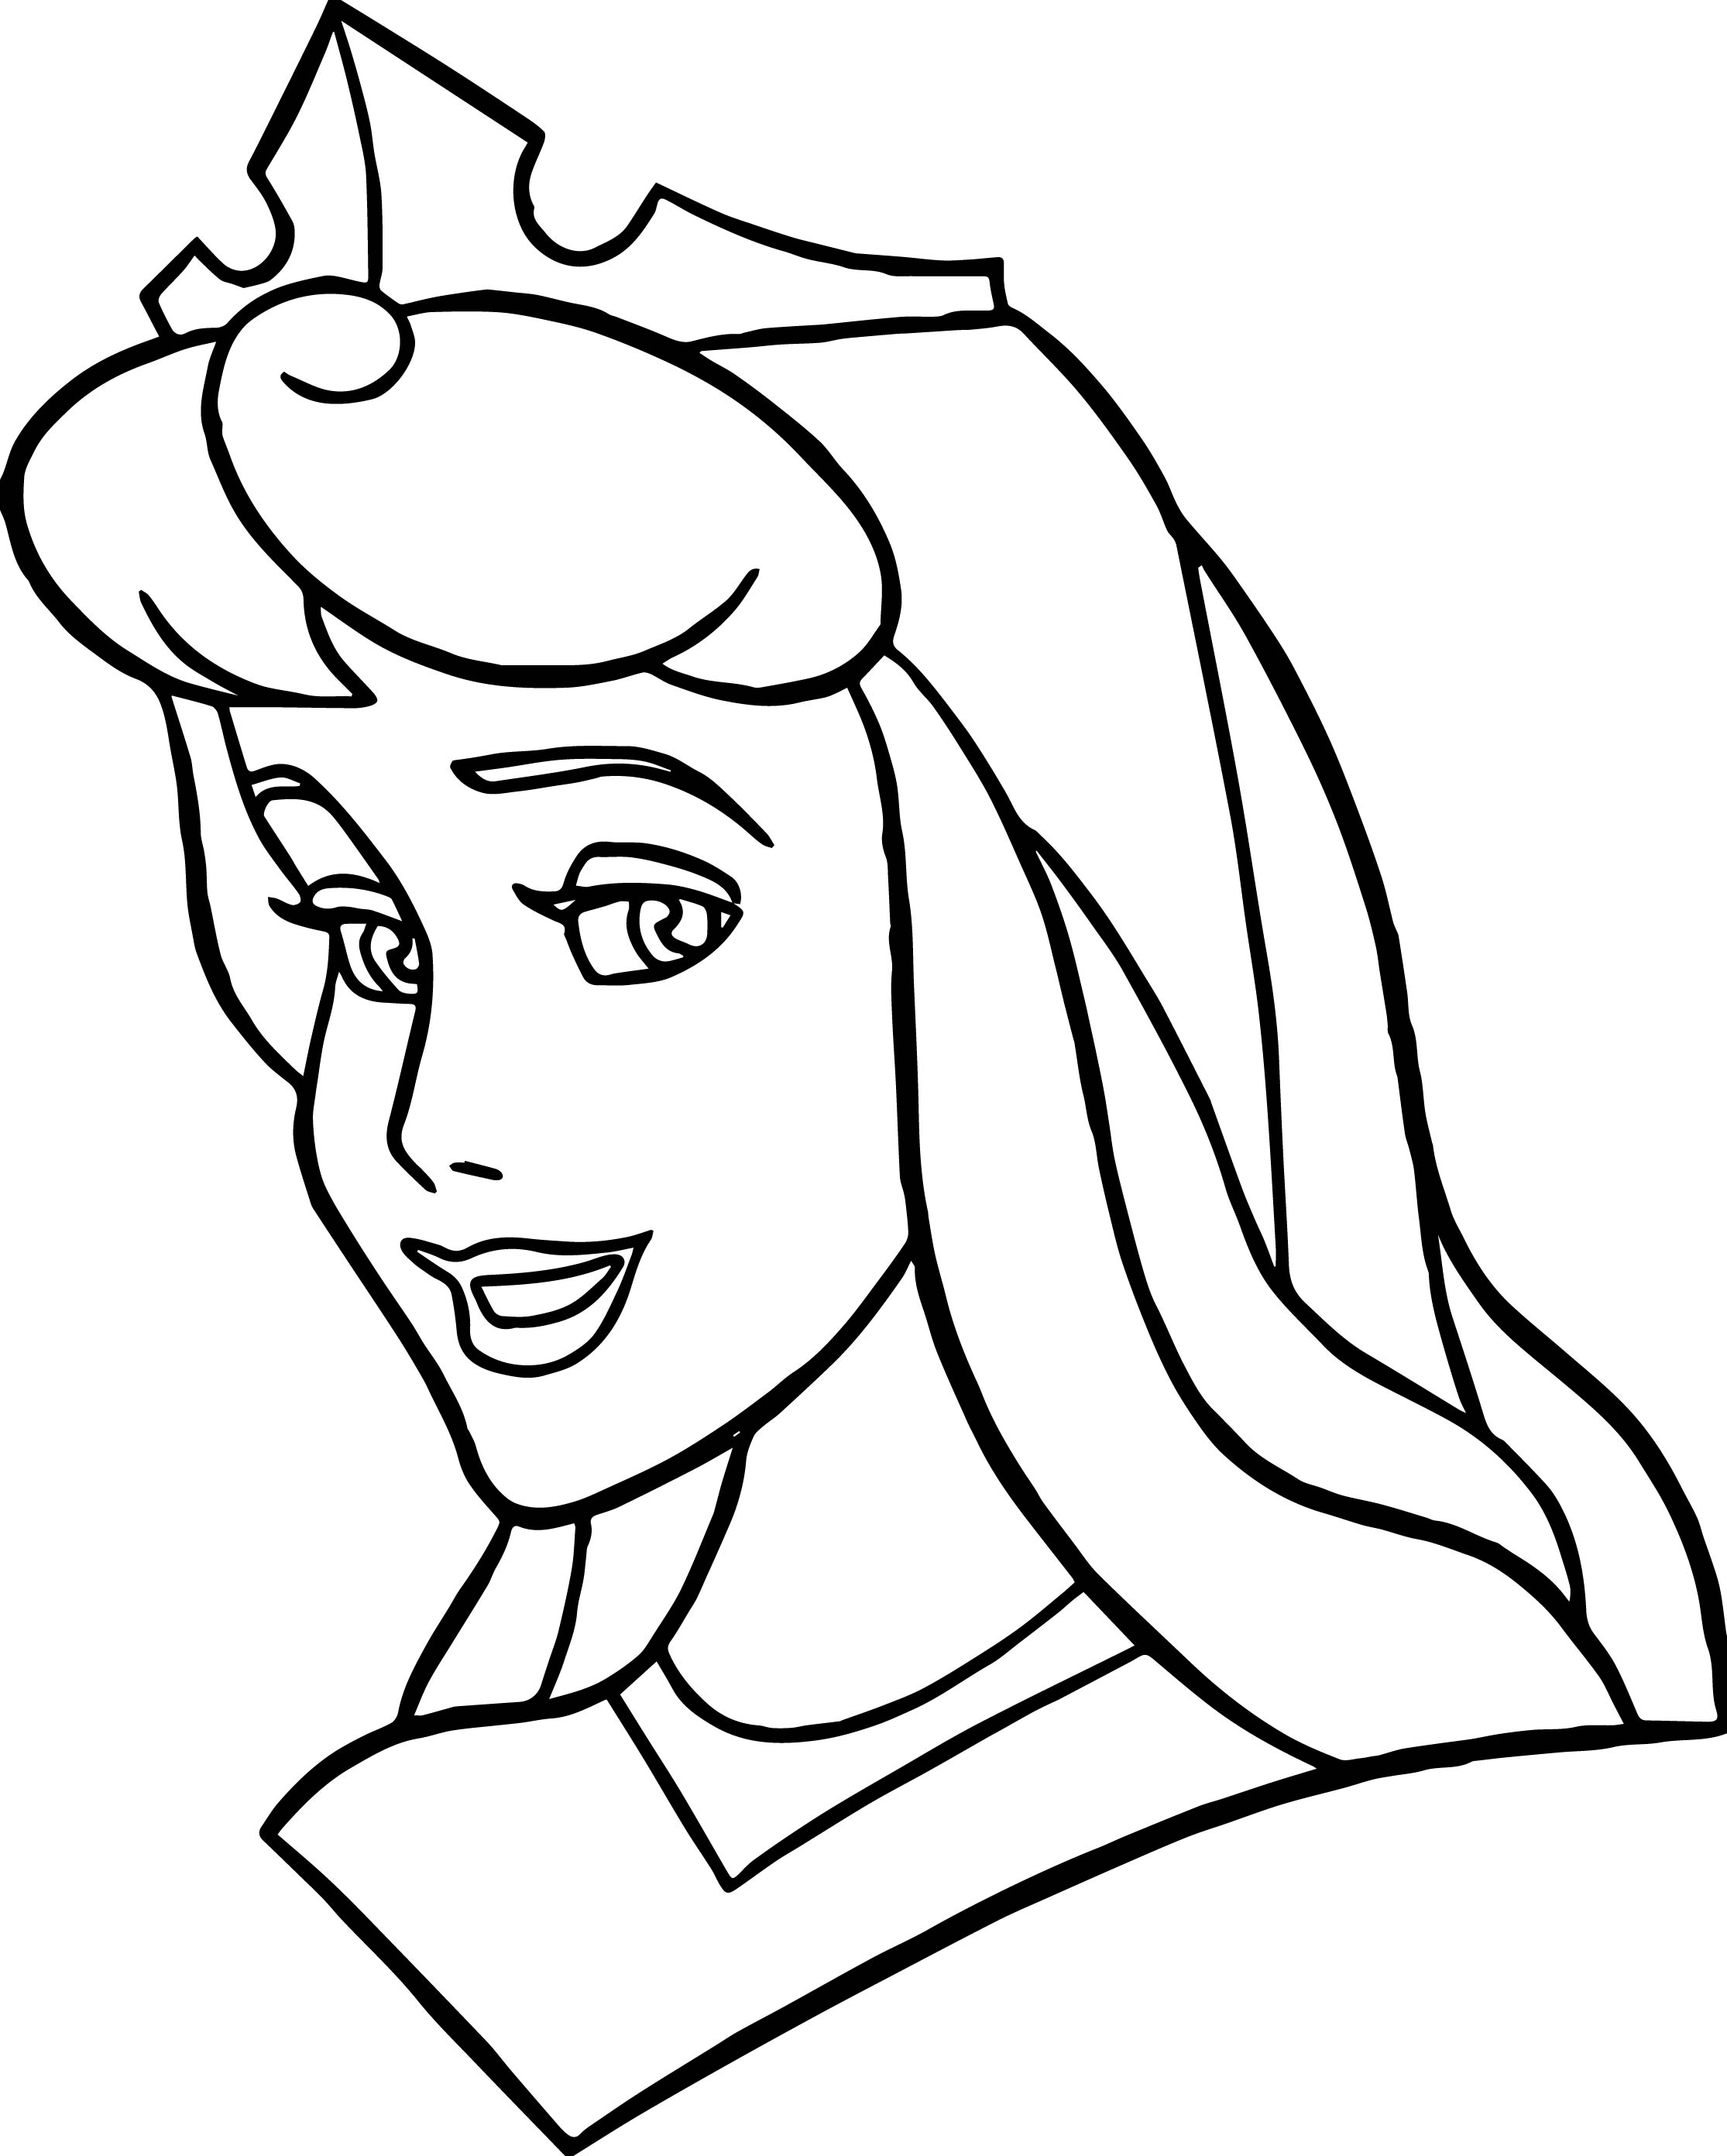 disney princess sleeping beauty face coloring page wecoloringpage